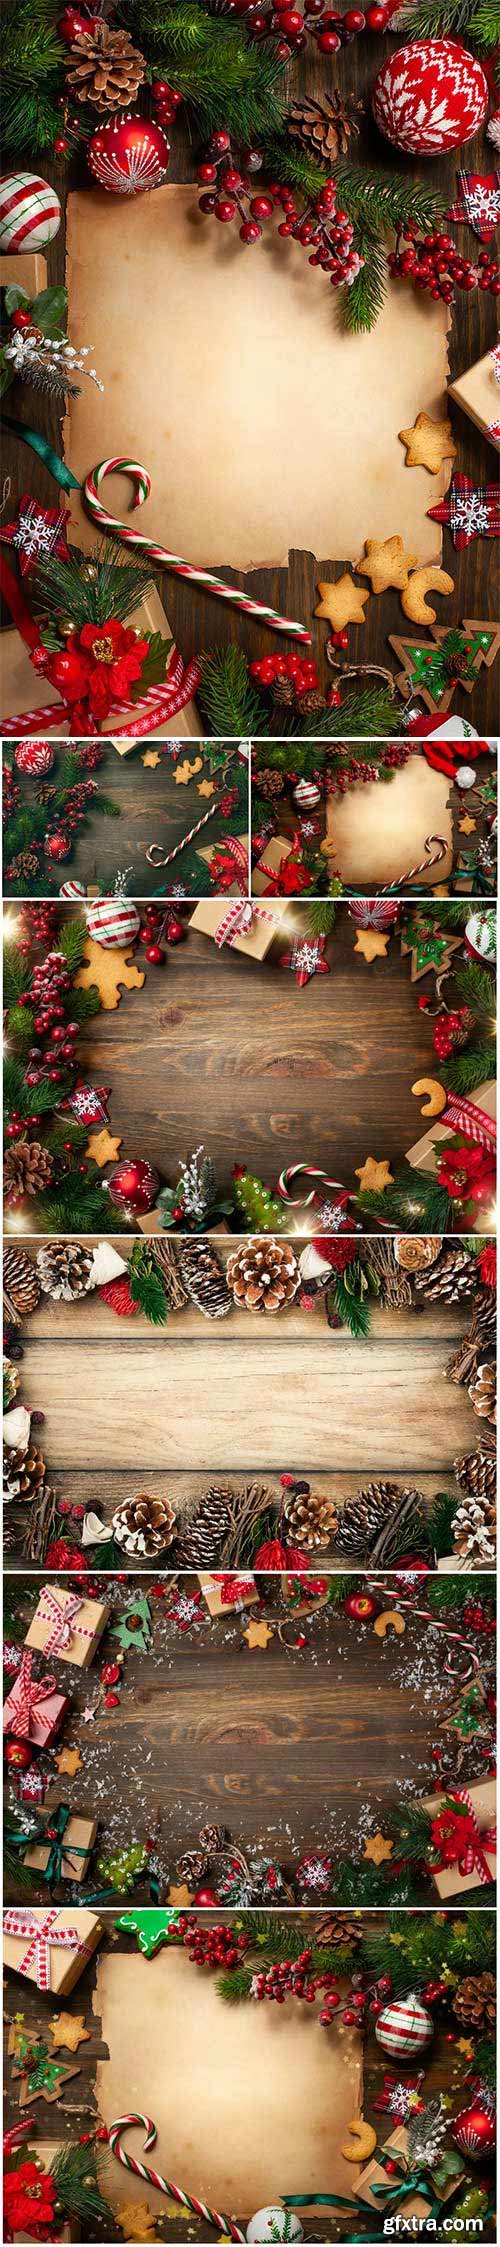 New Year and Christmas stock photos 86